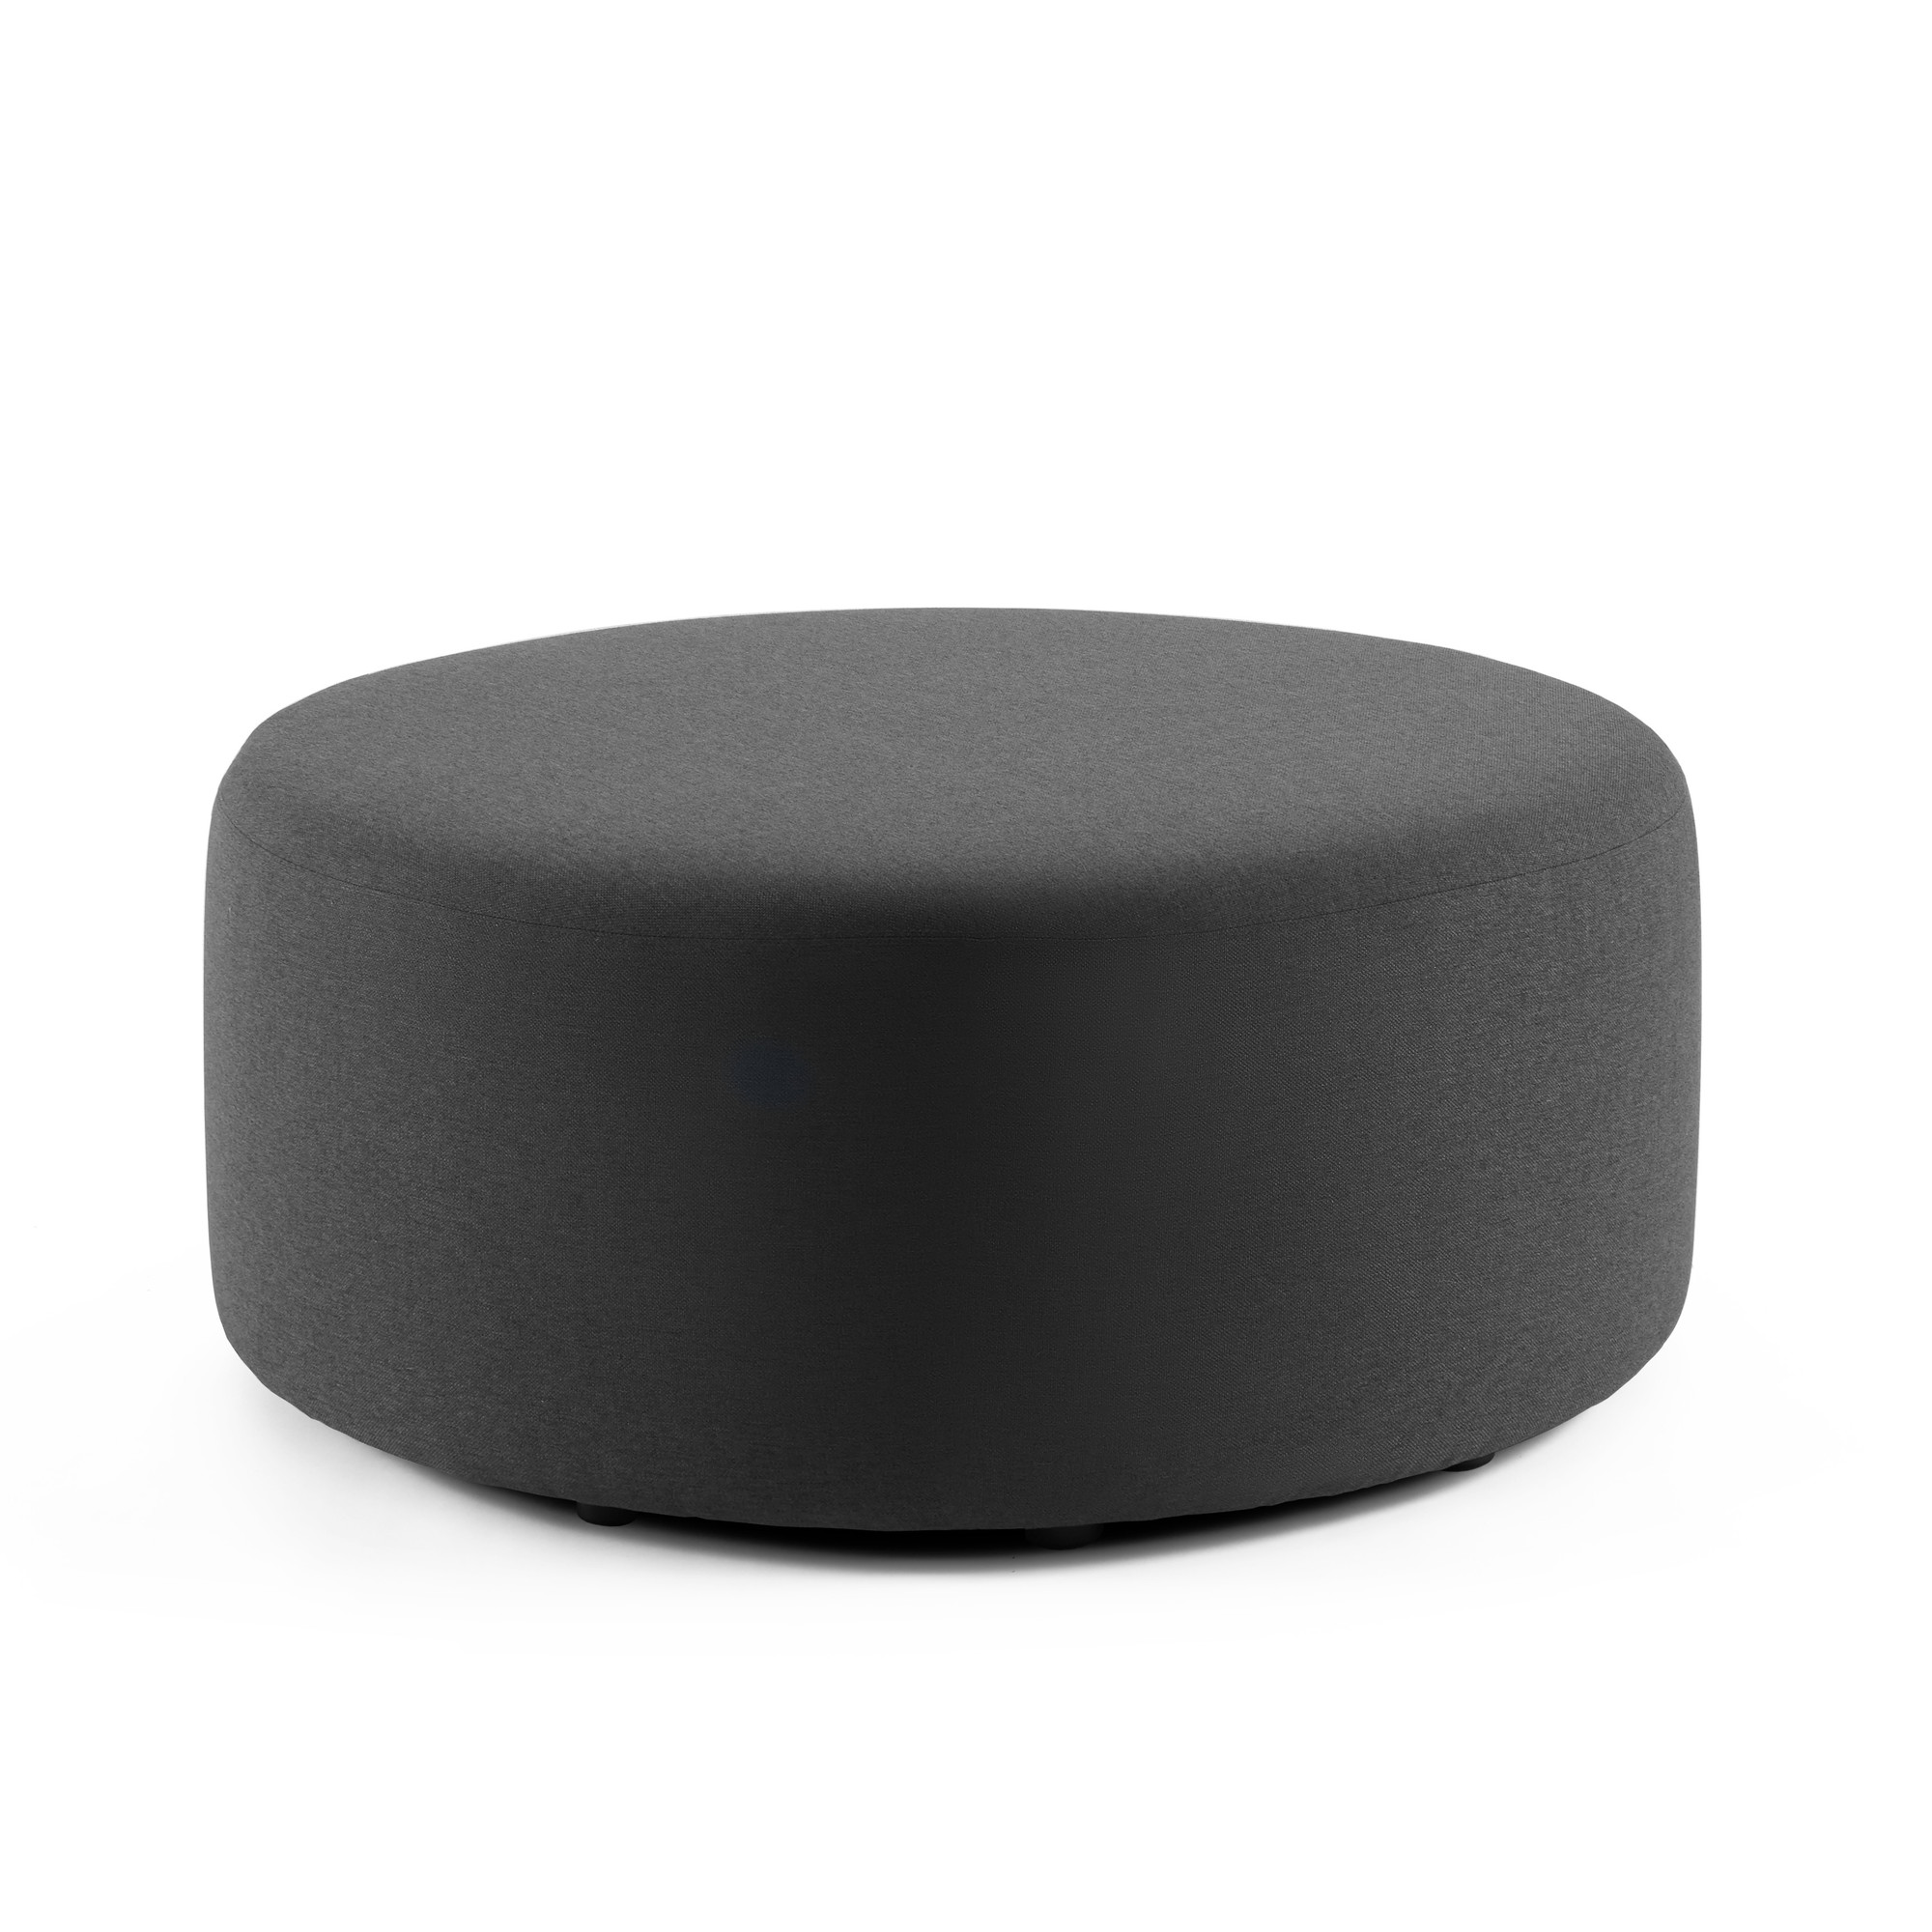 Awesome Dark Gray Block Party Lounge Round Ottoman 40 Office Furniture Poppin Cjindustries Chair Design For Home Cjindustriesco